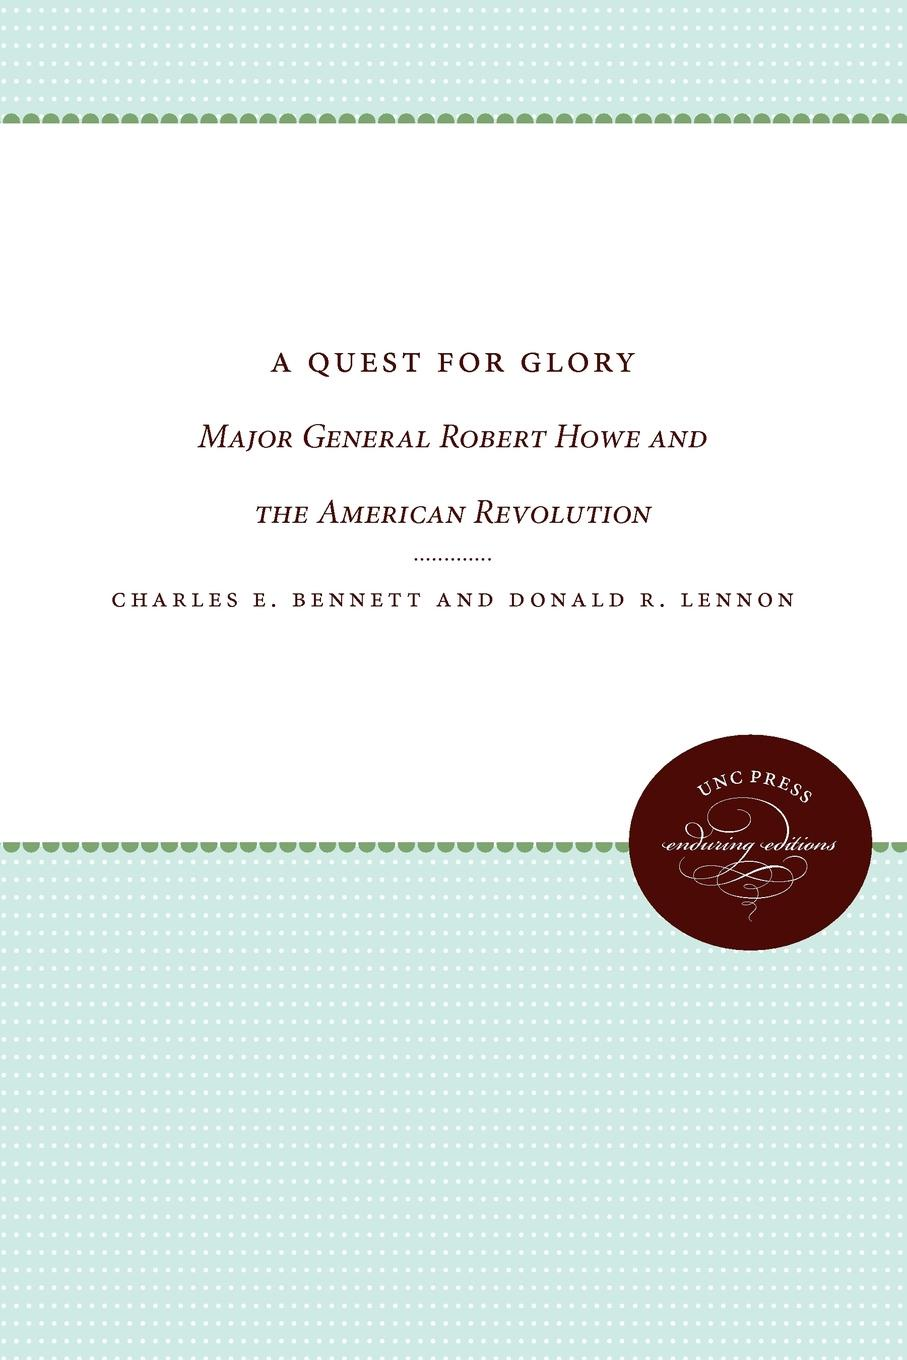 Charles E. Bennett, Donald R. Lennon A Quest for Glory. Major General Robert Howe and the American Revolution